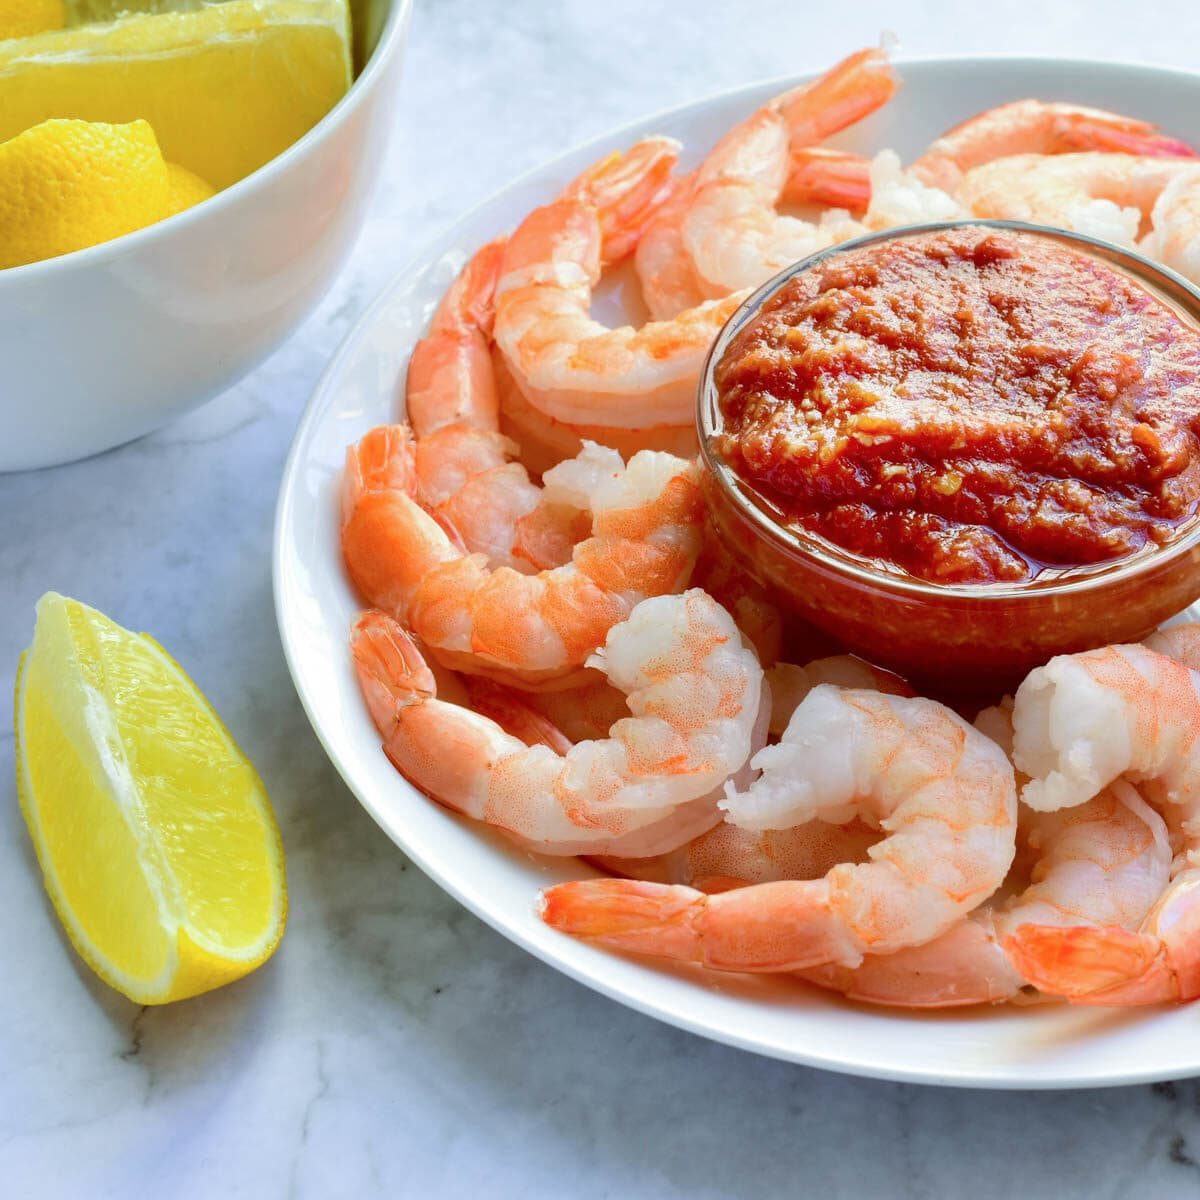 Plate with raw shrimp and cocktail sauce in a glass bowl and lemon wedges on the side.